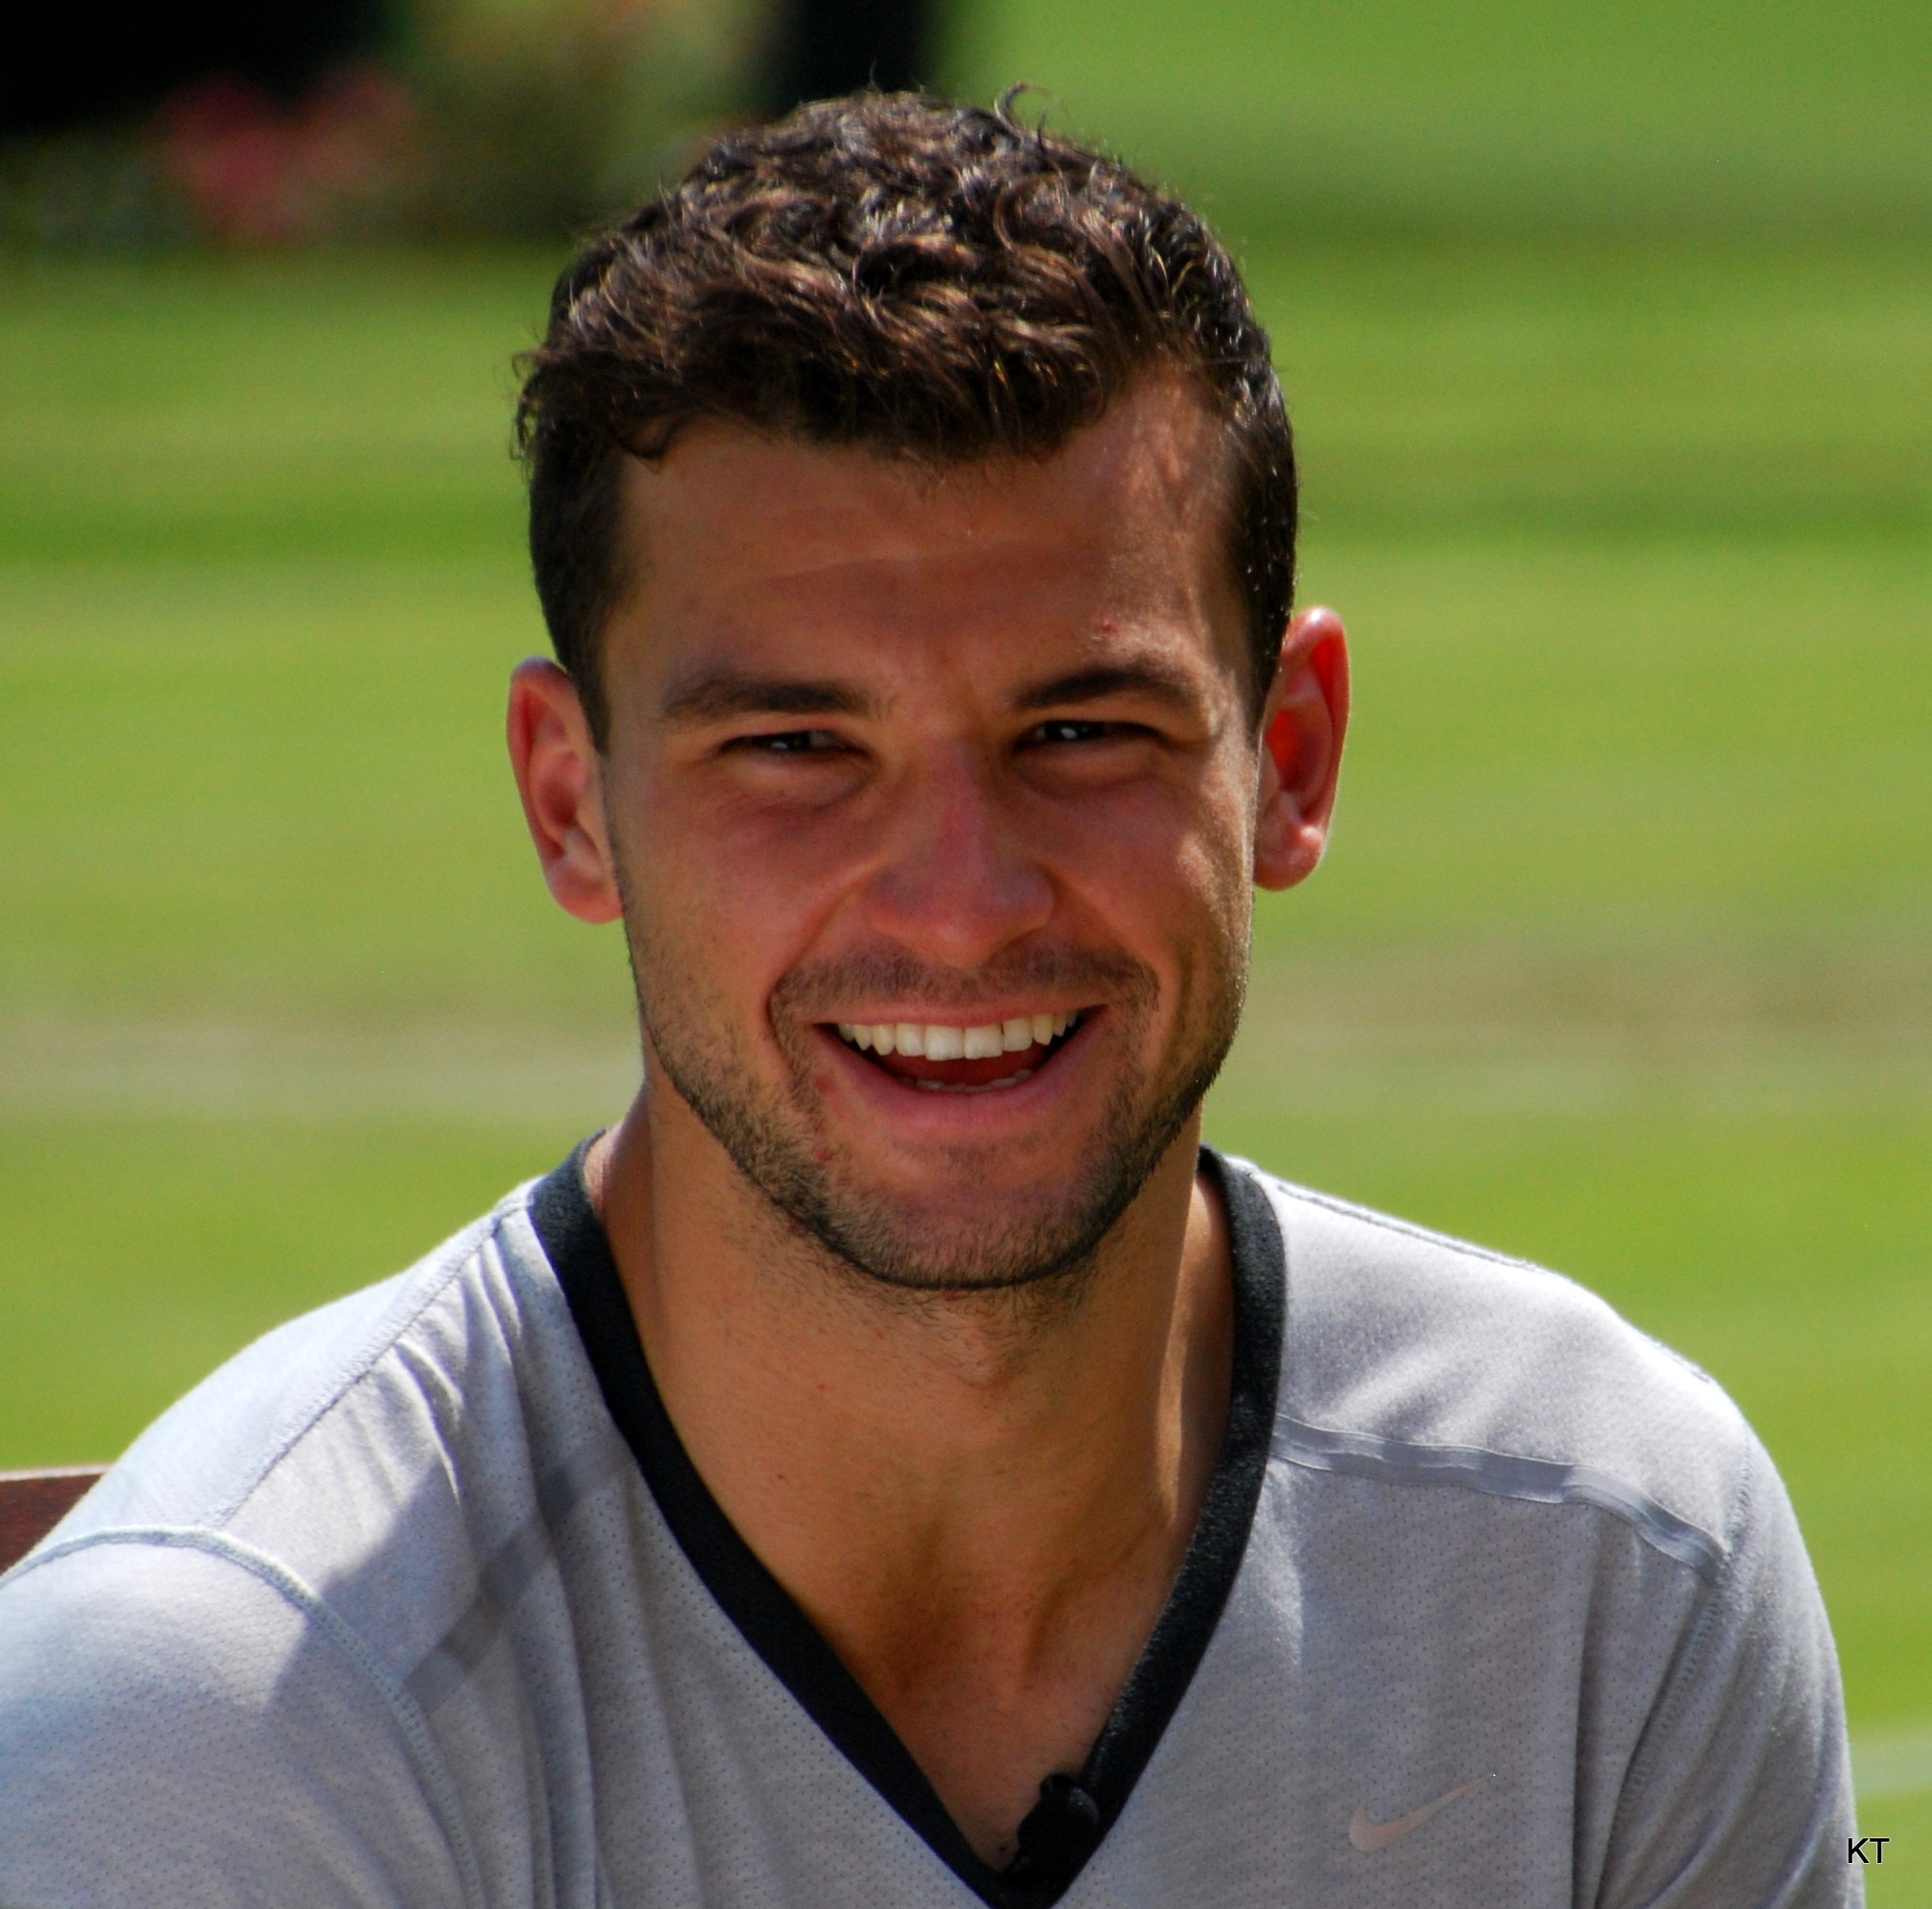 Grigor Dimitrov - 2020 Dark brown hair & alternative hair style.